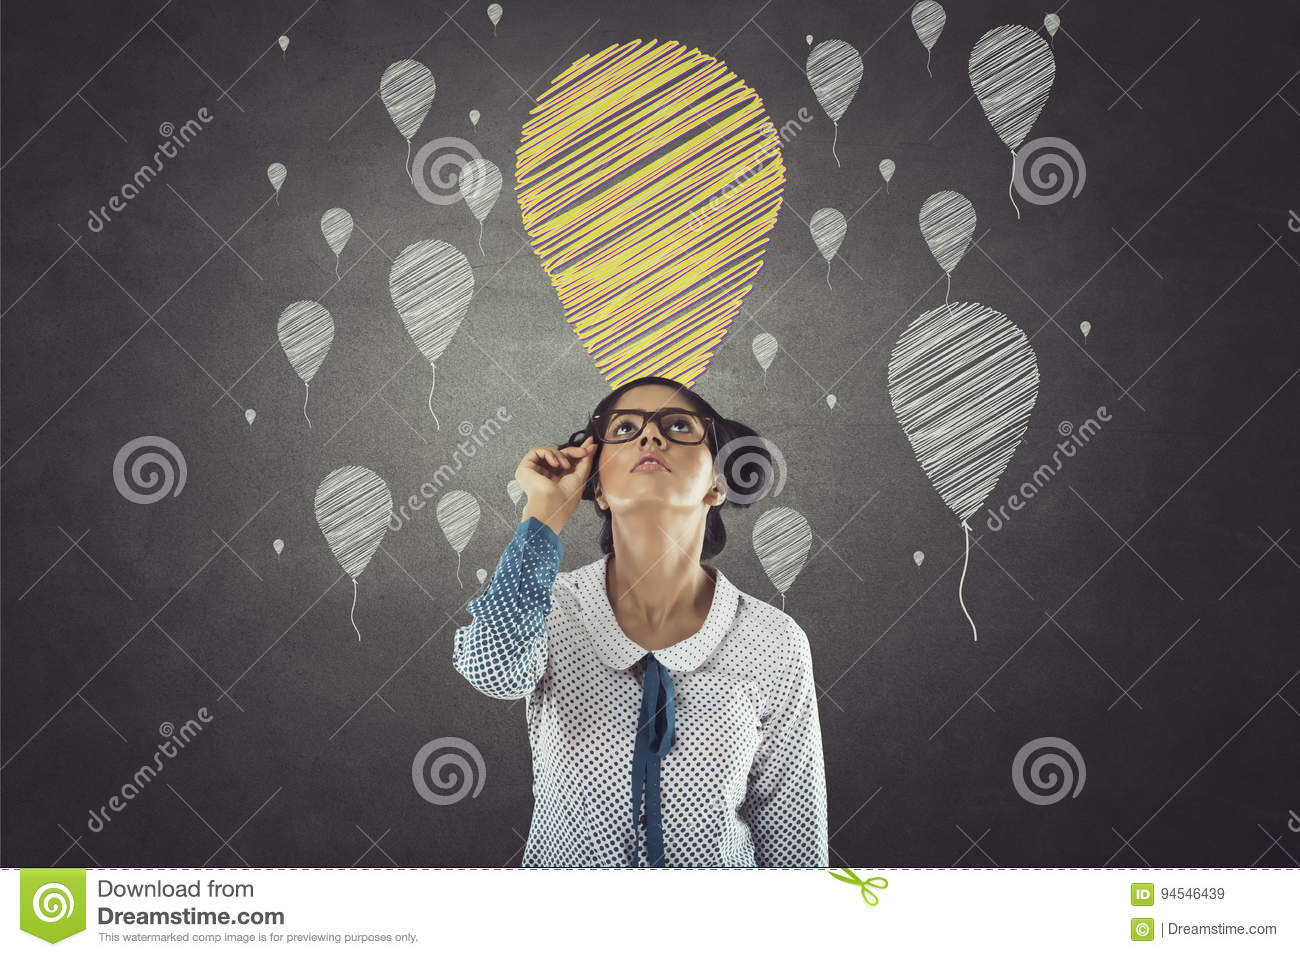 Portrait of businesswoman with balloon icons